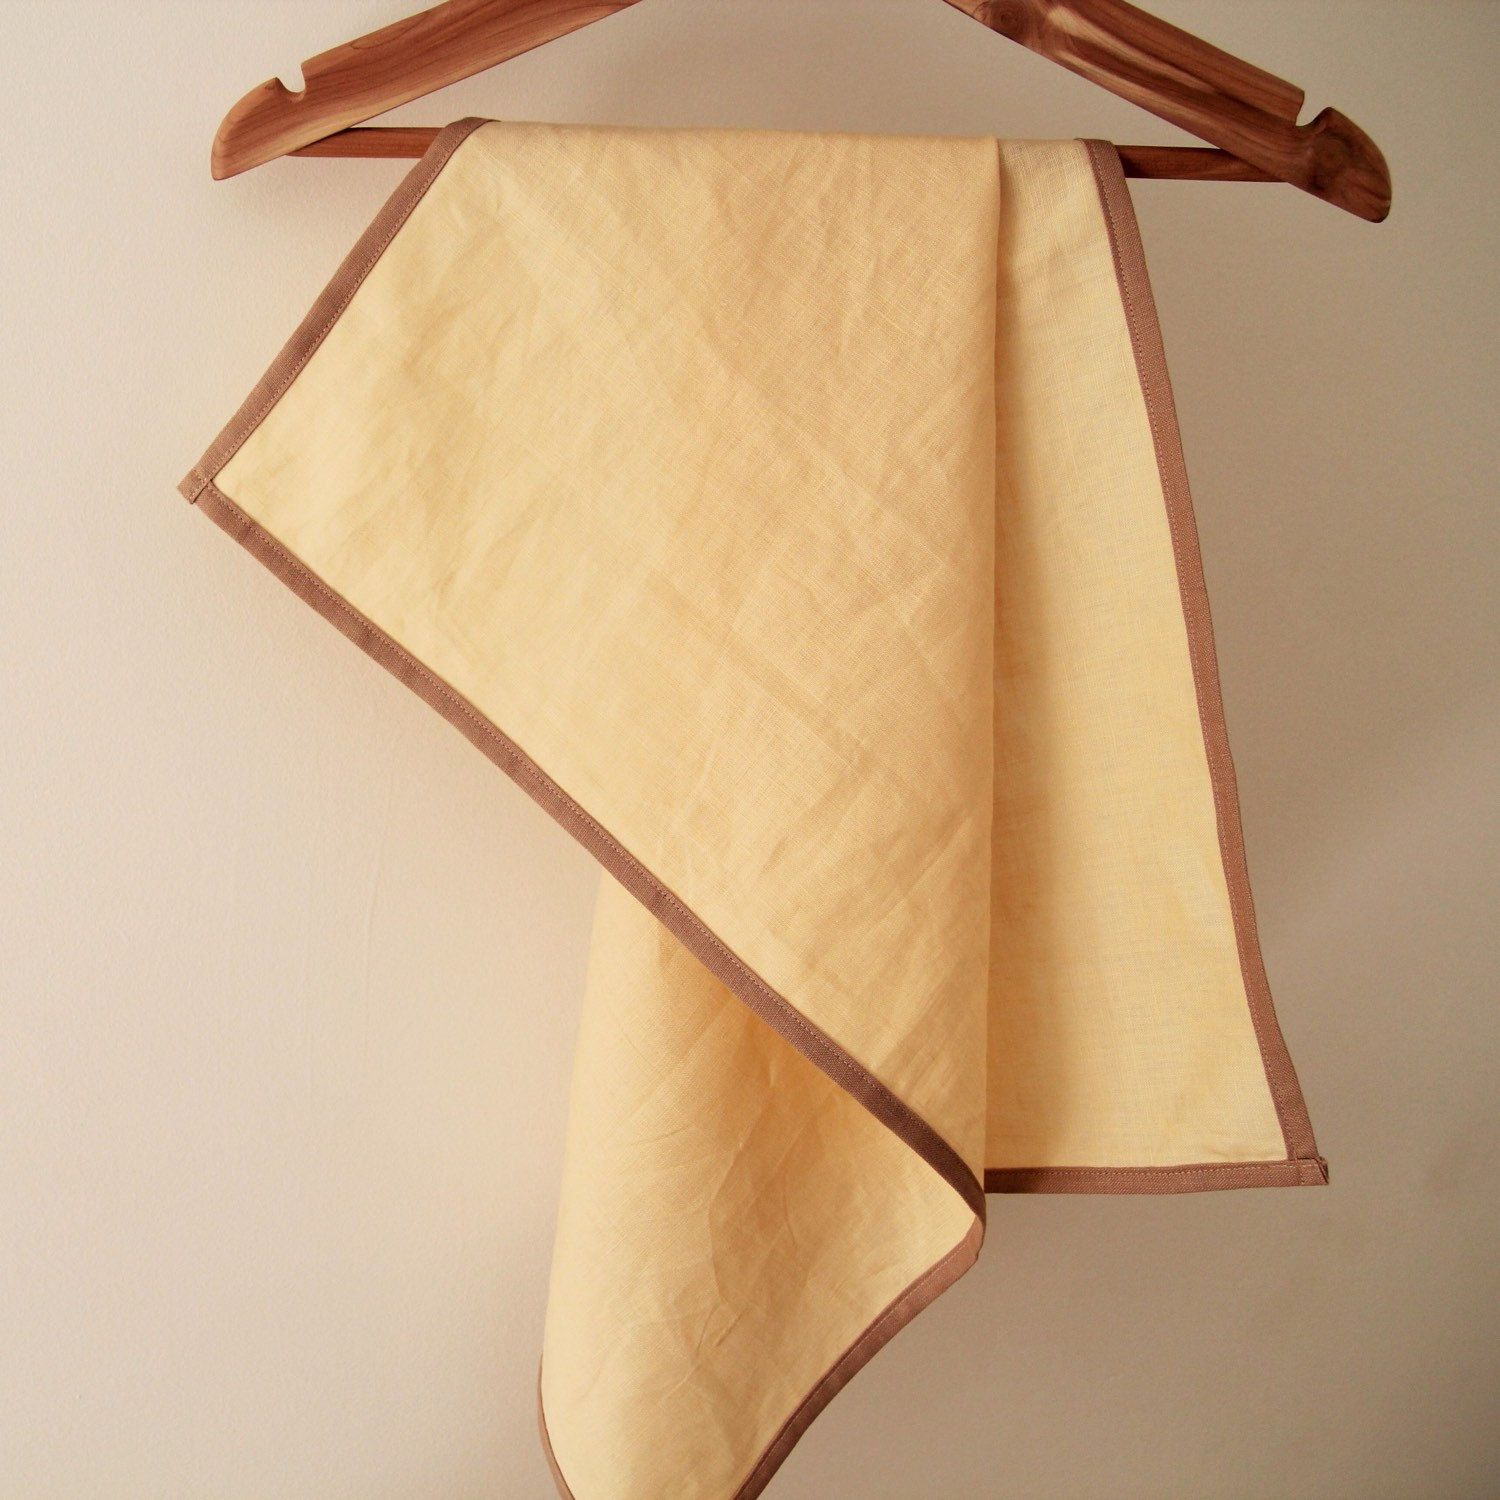 This modern tea towel is made of 100% high quality linen that is highly absorbent and soft, quickly dried!